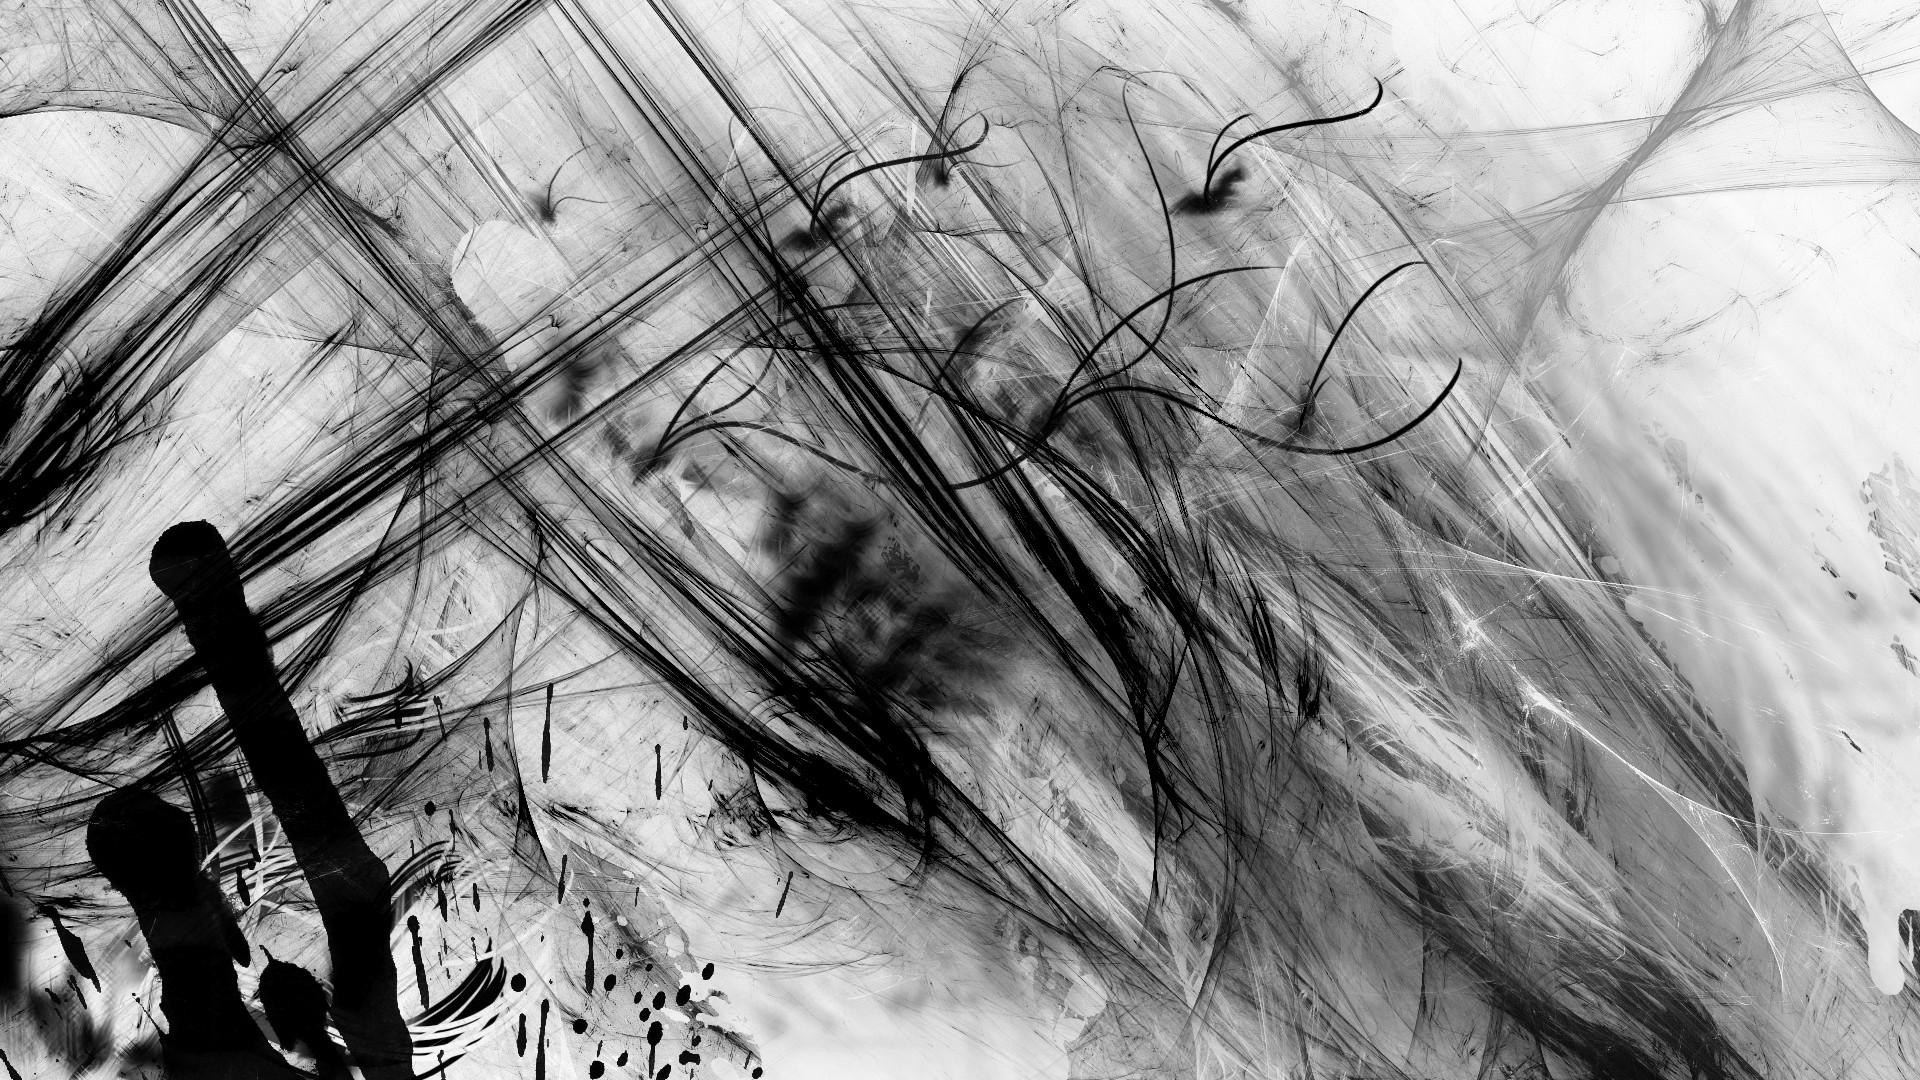 Abstract black white spray paint contrast wallpaper